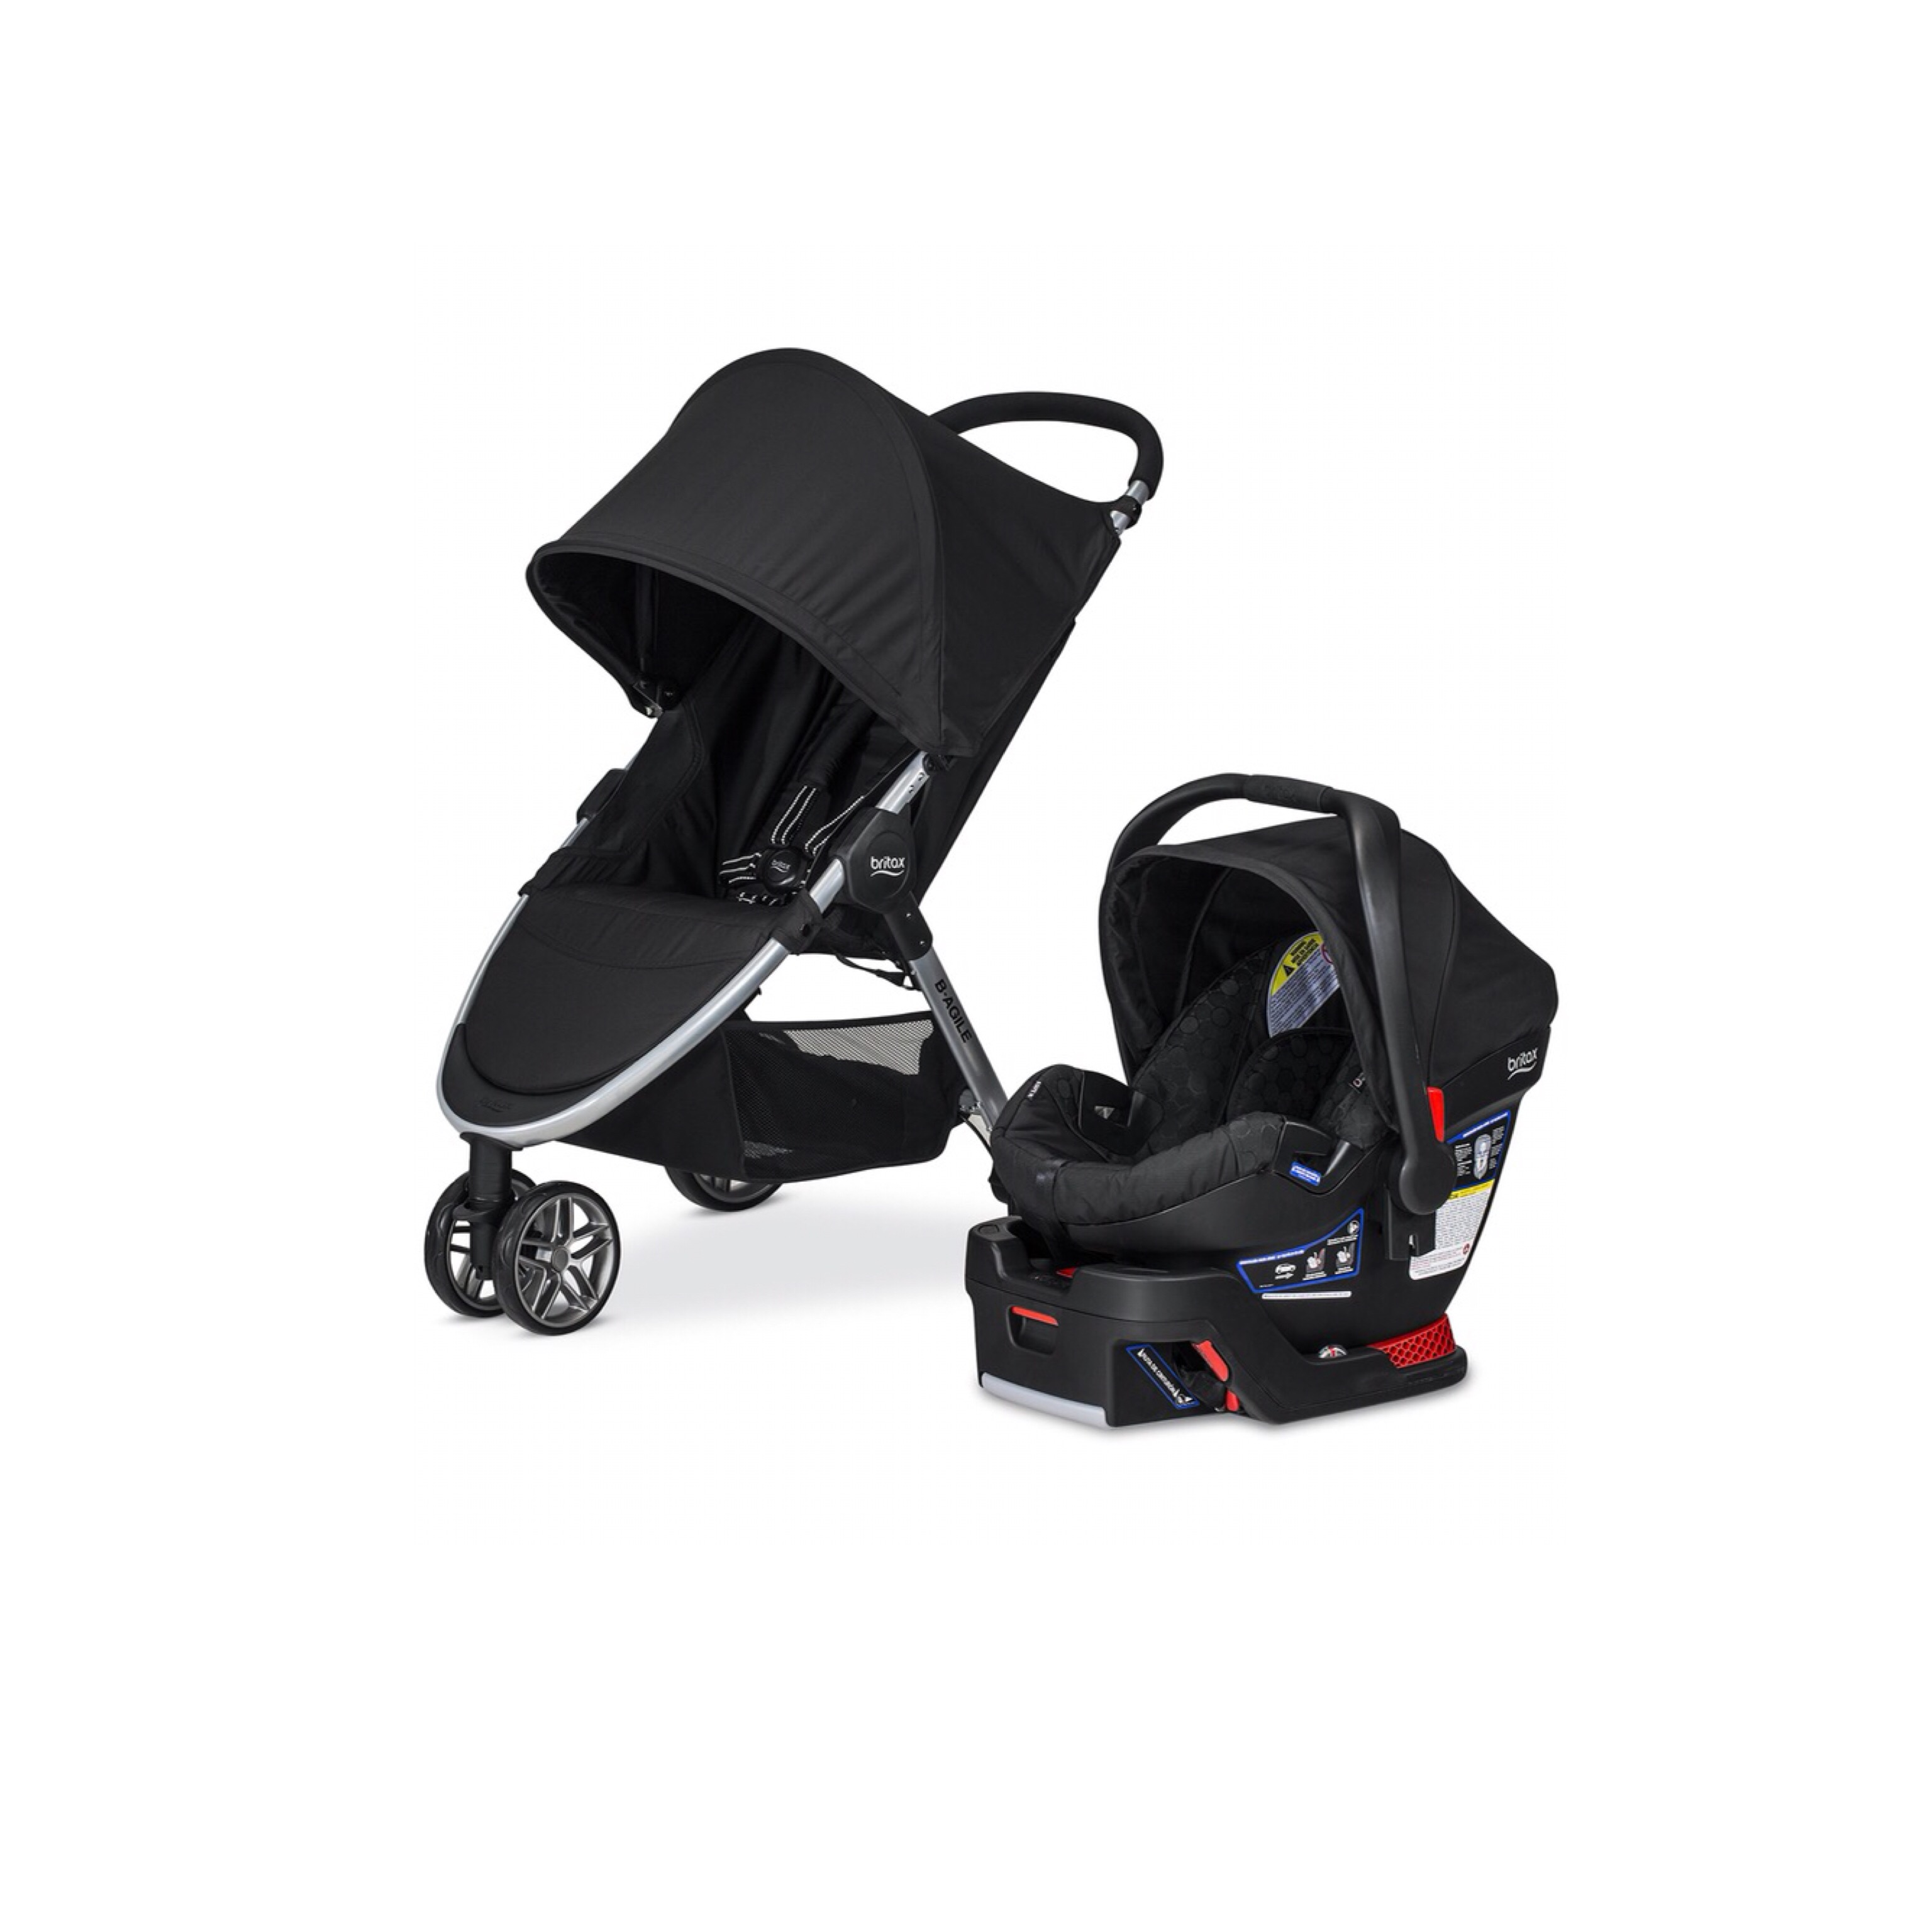 Britax Car Seat With Stroller Crib Stroller Car Seat Rentals In Miami And West Palm Beach Fl